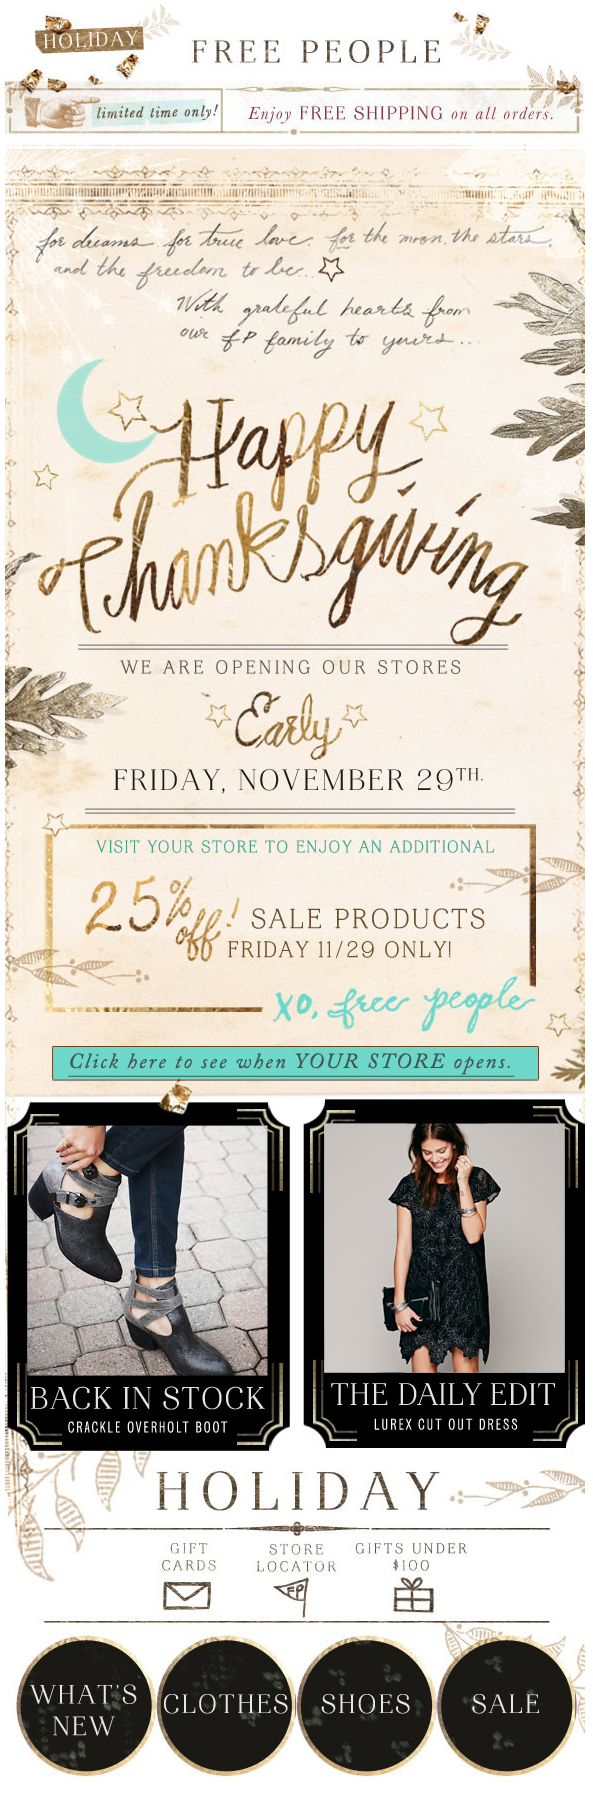 Free People Happy Thanksgiving Promo Email Design Inspiration Email Design Website Banner